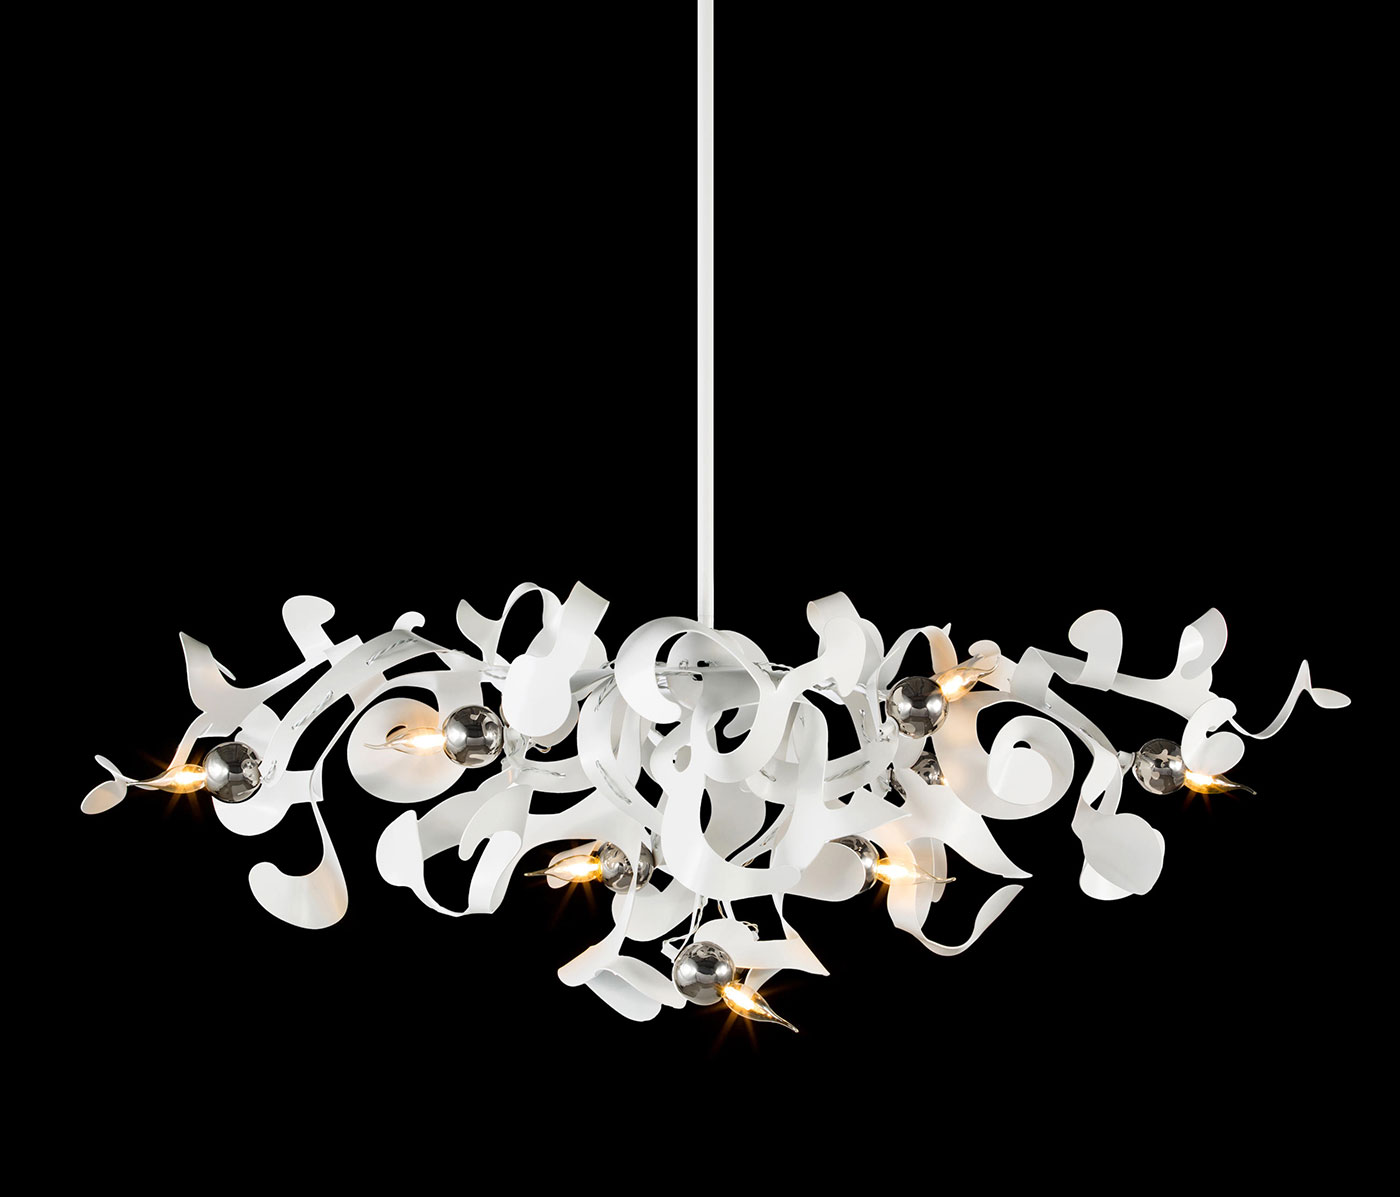 Obegi Home Lighting Brand Van Egmond kelp oval chandelier